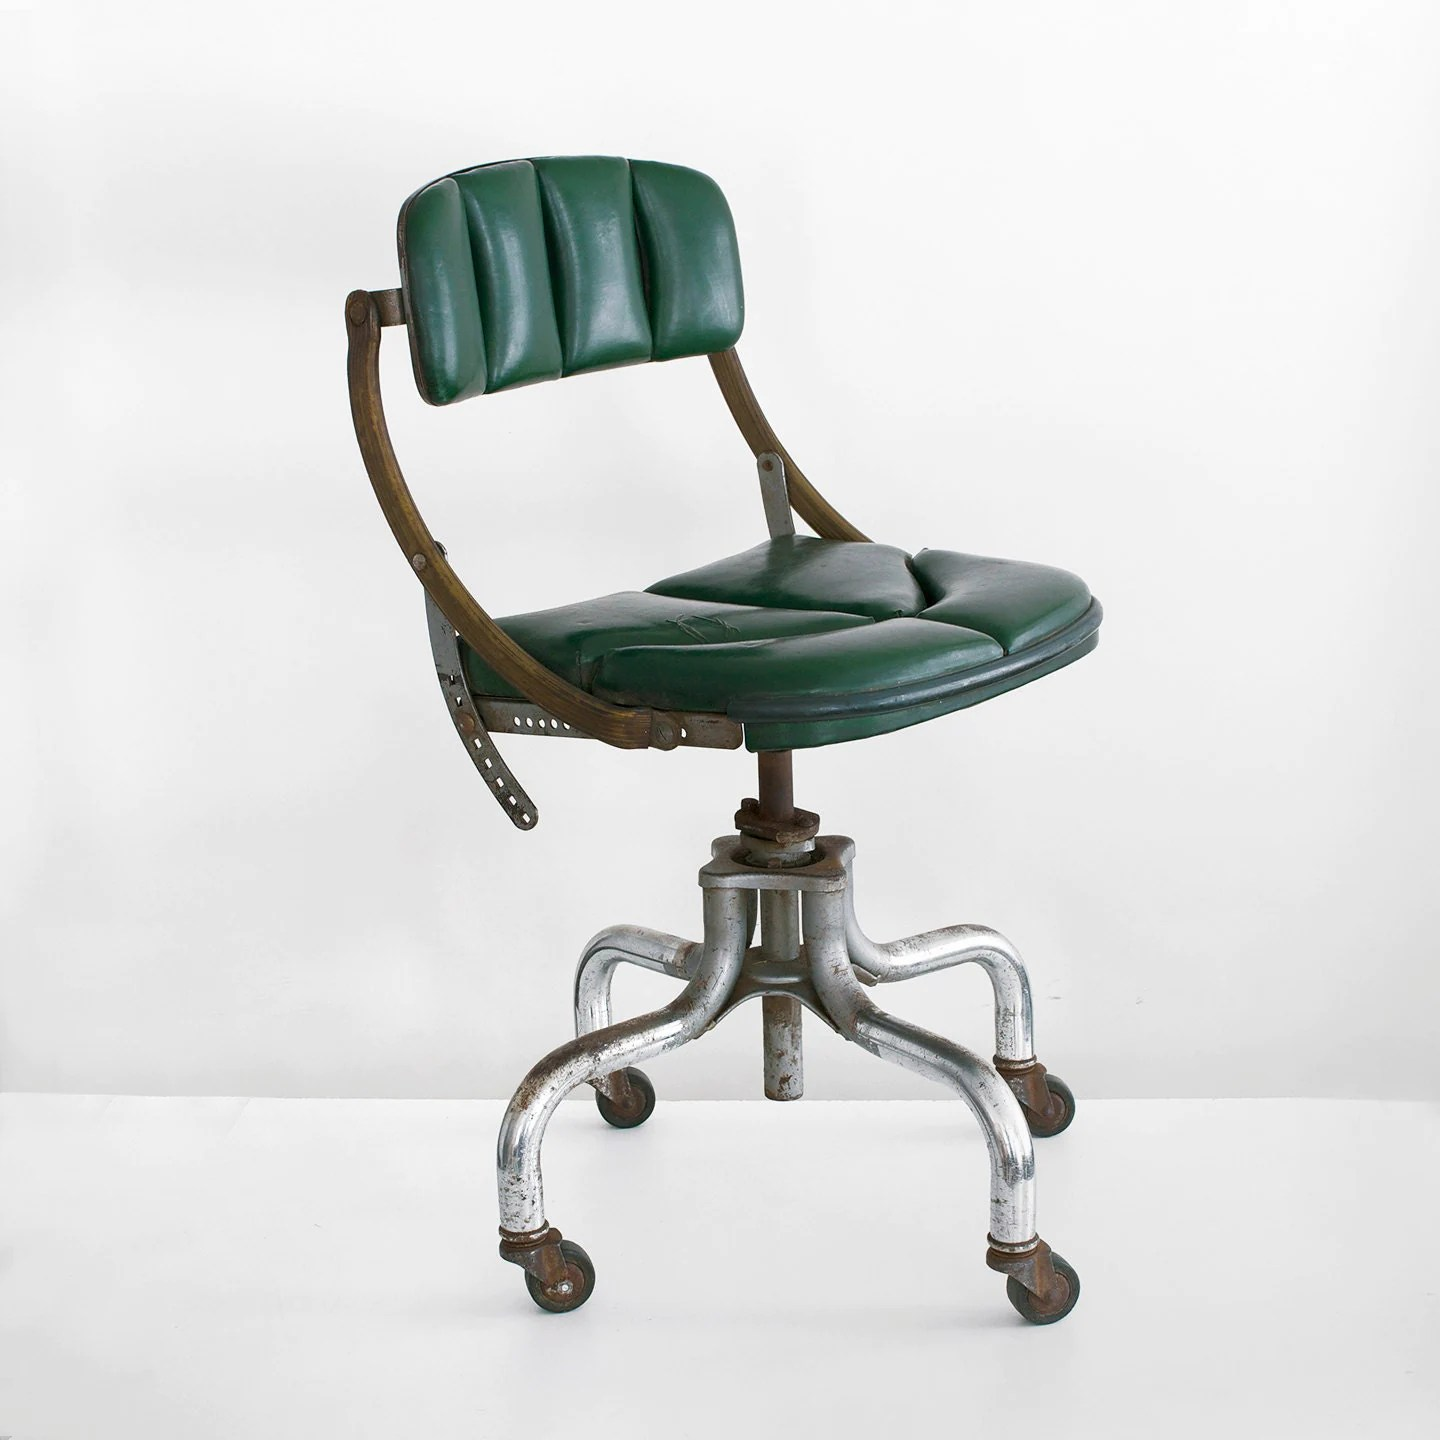 swivel chair nigeria toddler folding table and chairs vintage office do more industrial